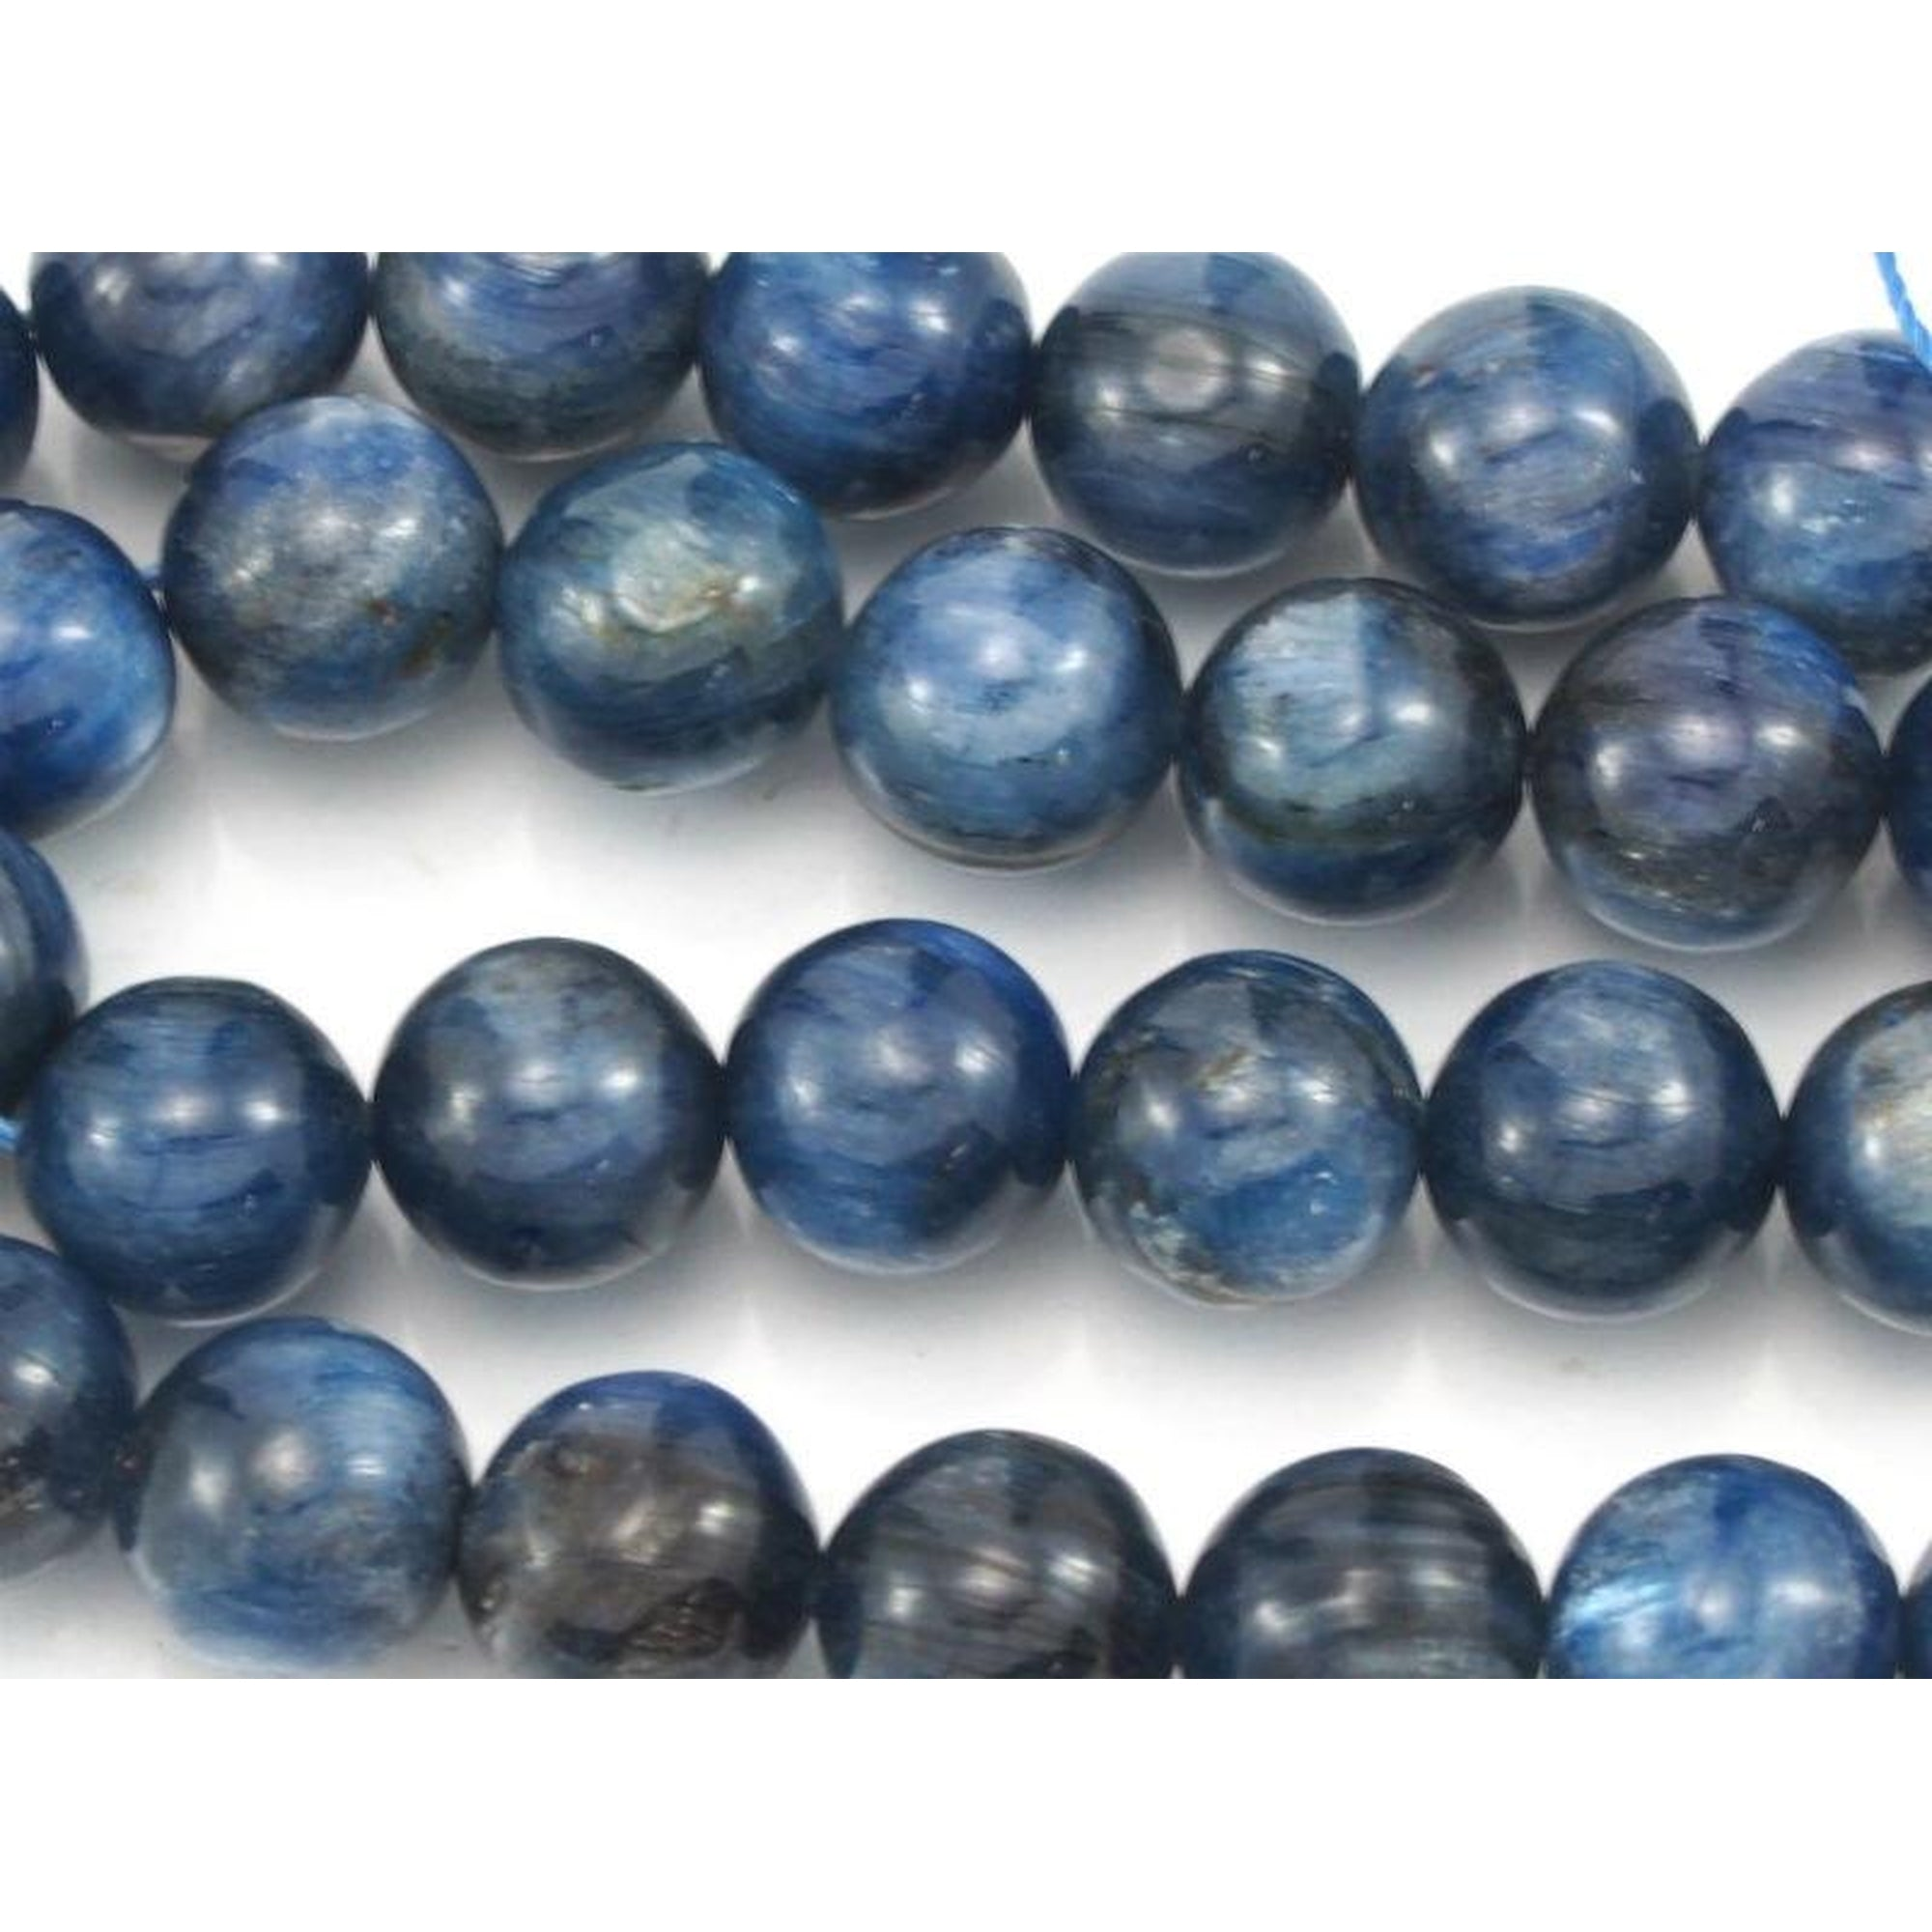 Deep Blue Moroccan Pottery Beads Rectangle 5mm Morocco African Clay Handmade